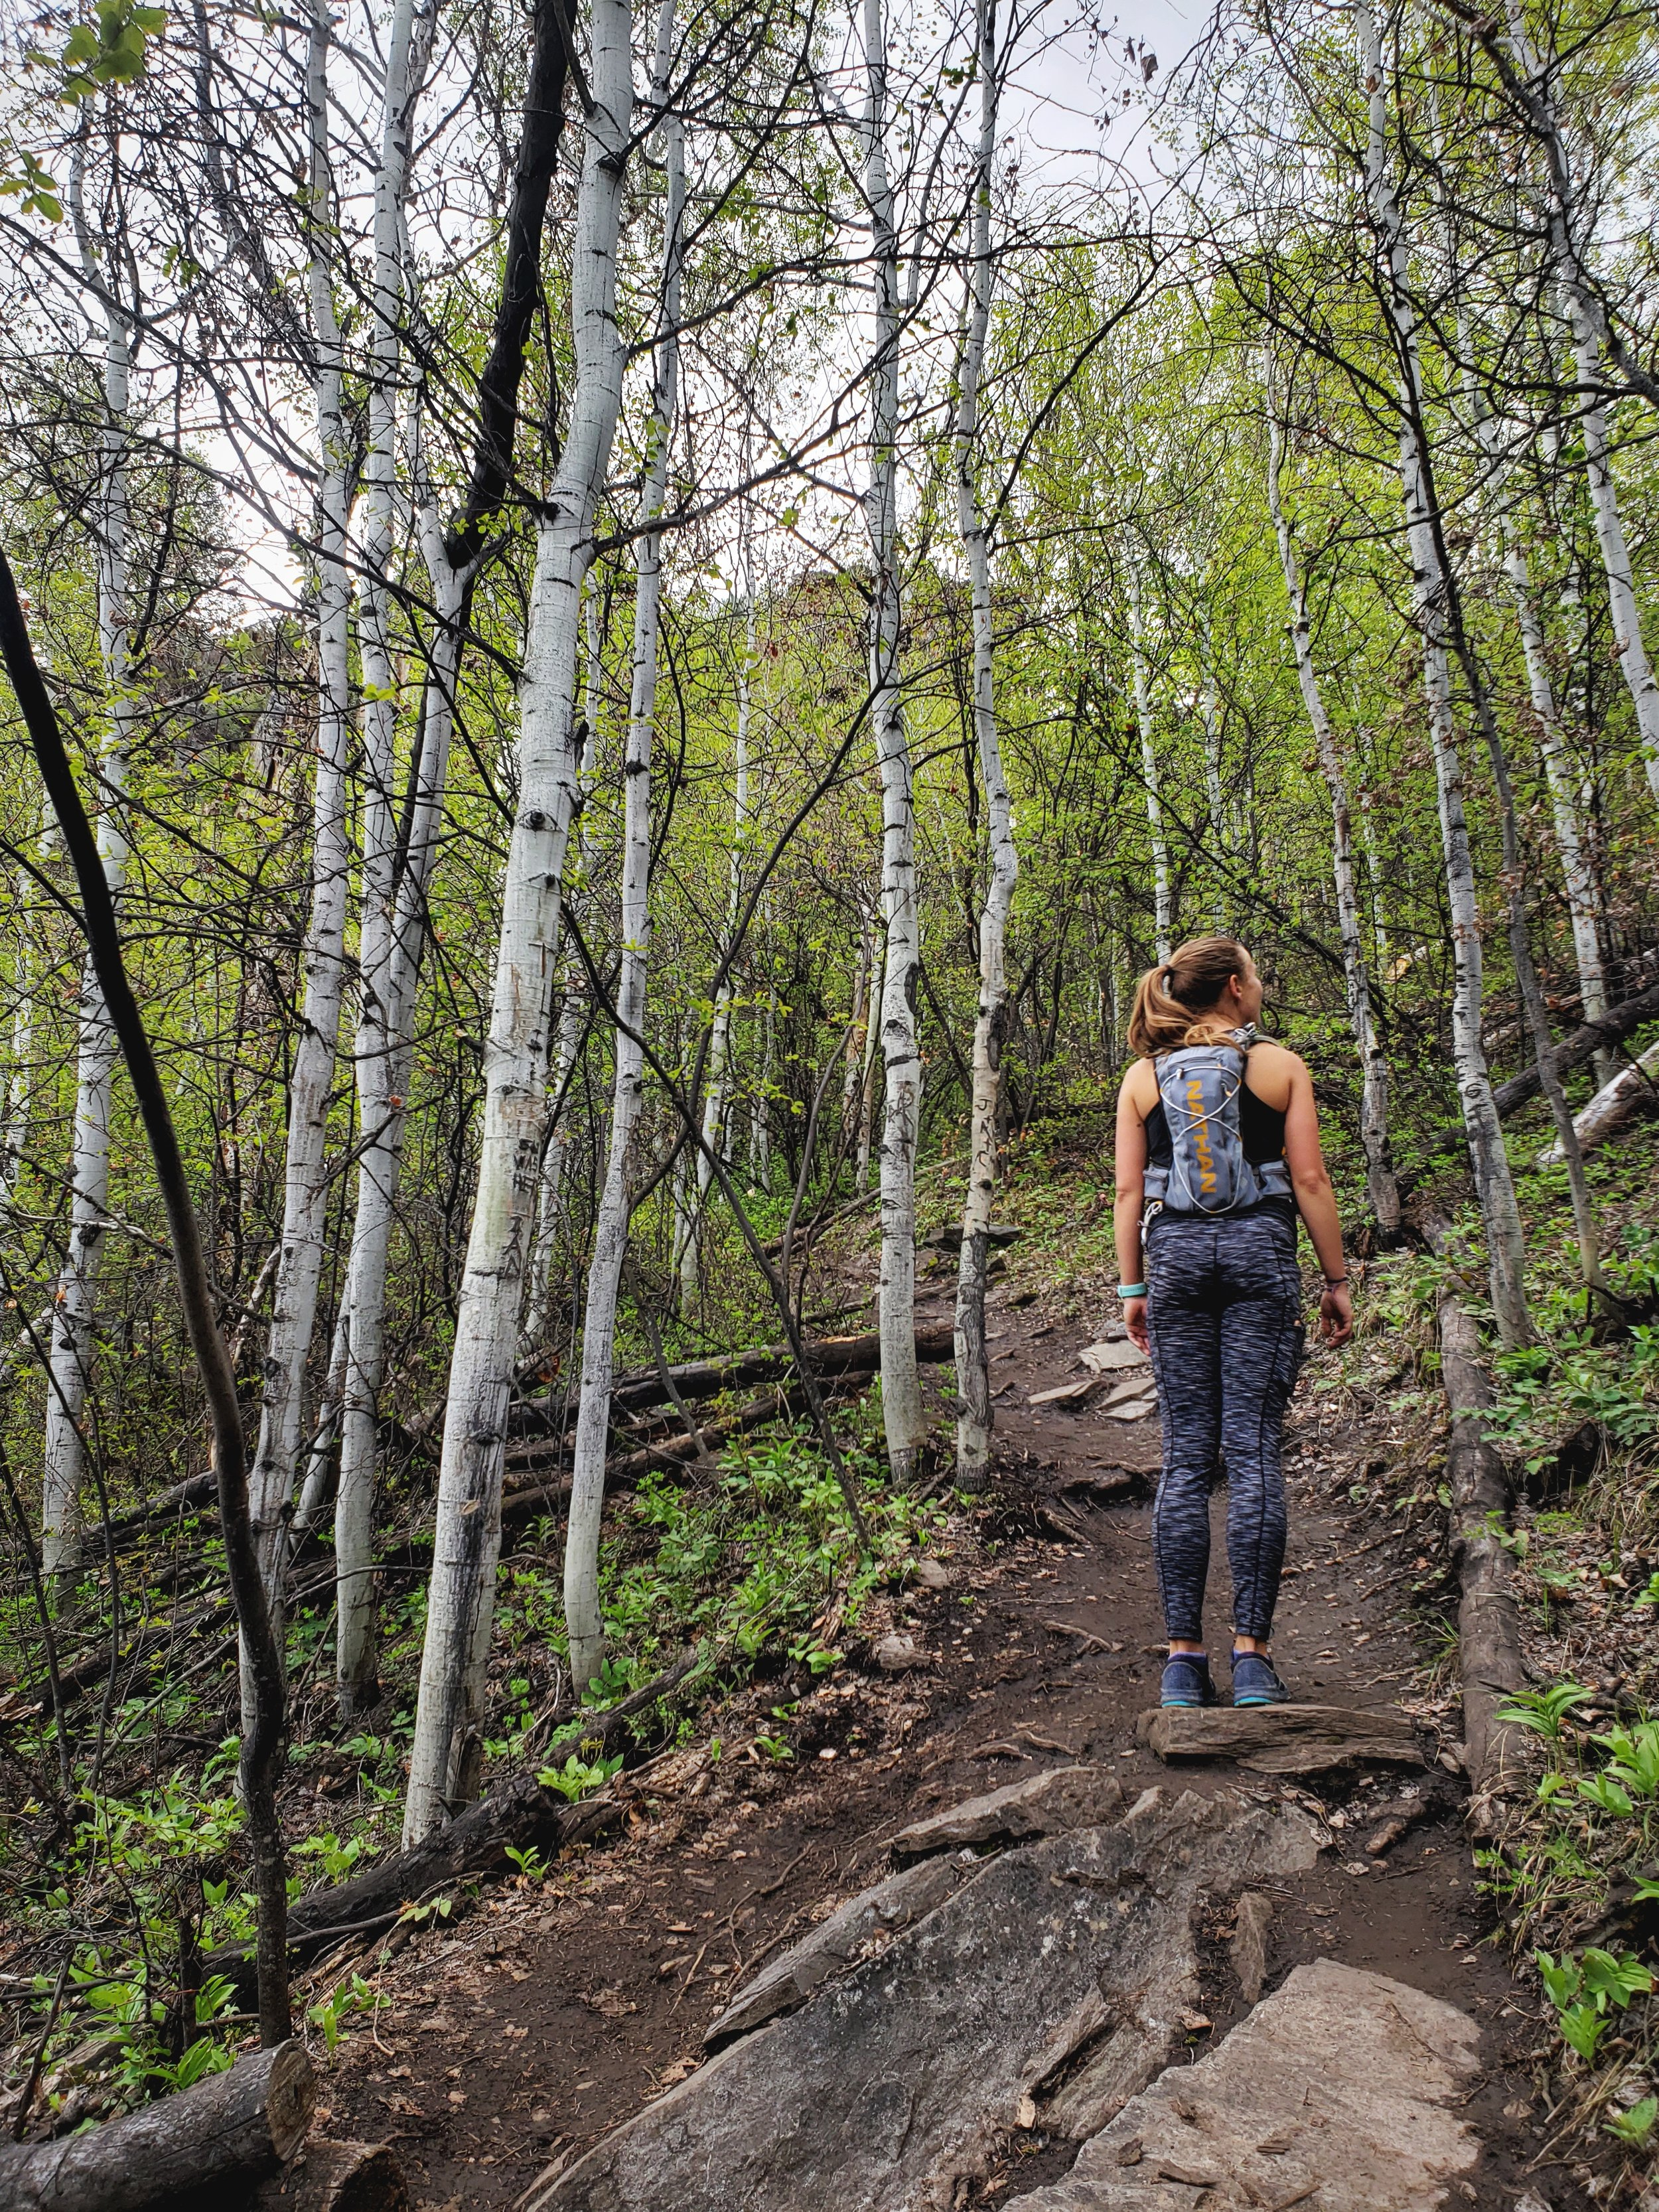 The first portion of the hike is on the Oak Flat Loop, which goes through a lush aspen grove.